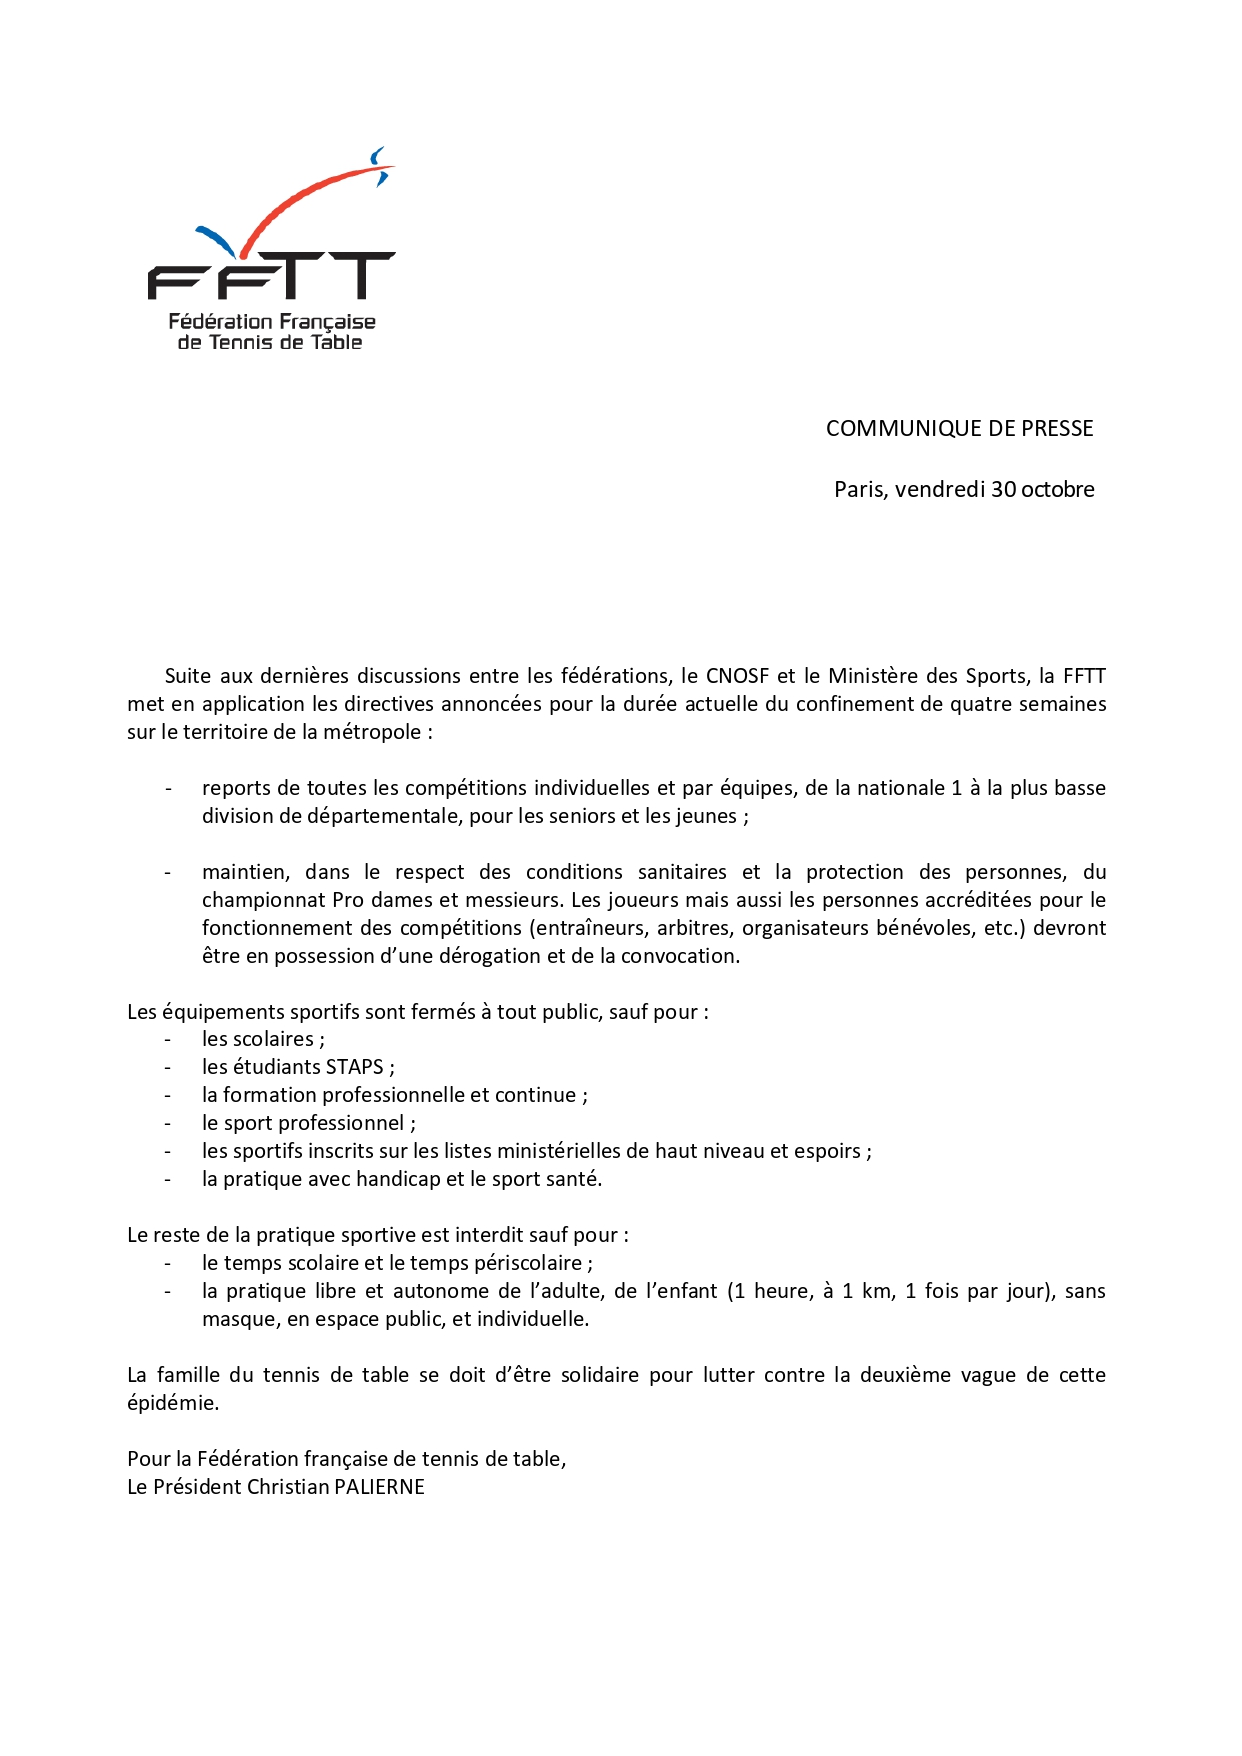 CP Annonce reconfinement page 00011